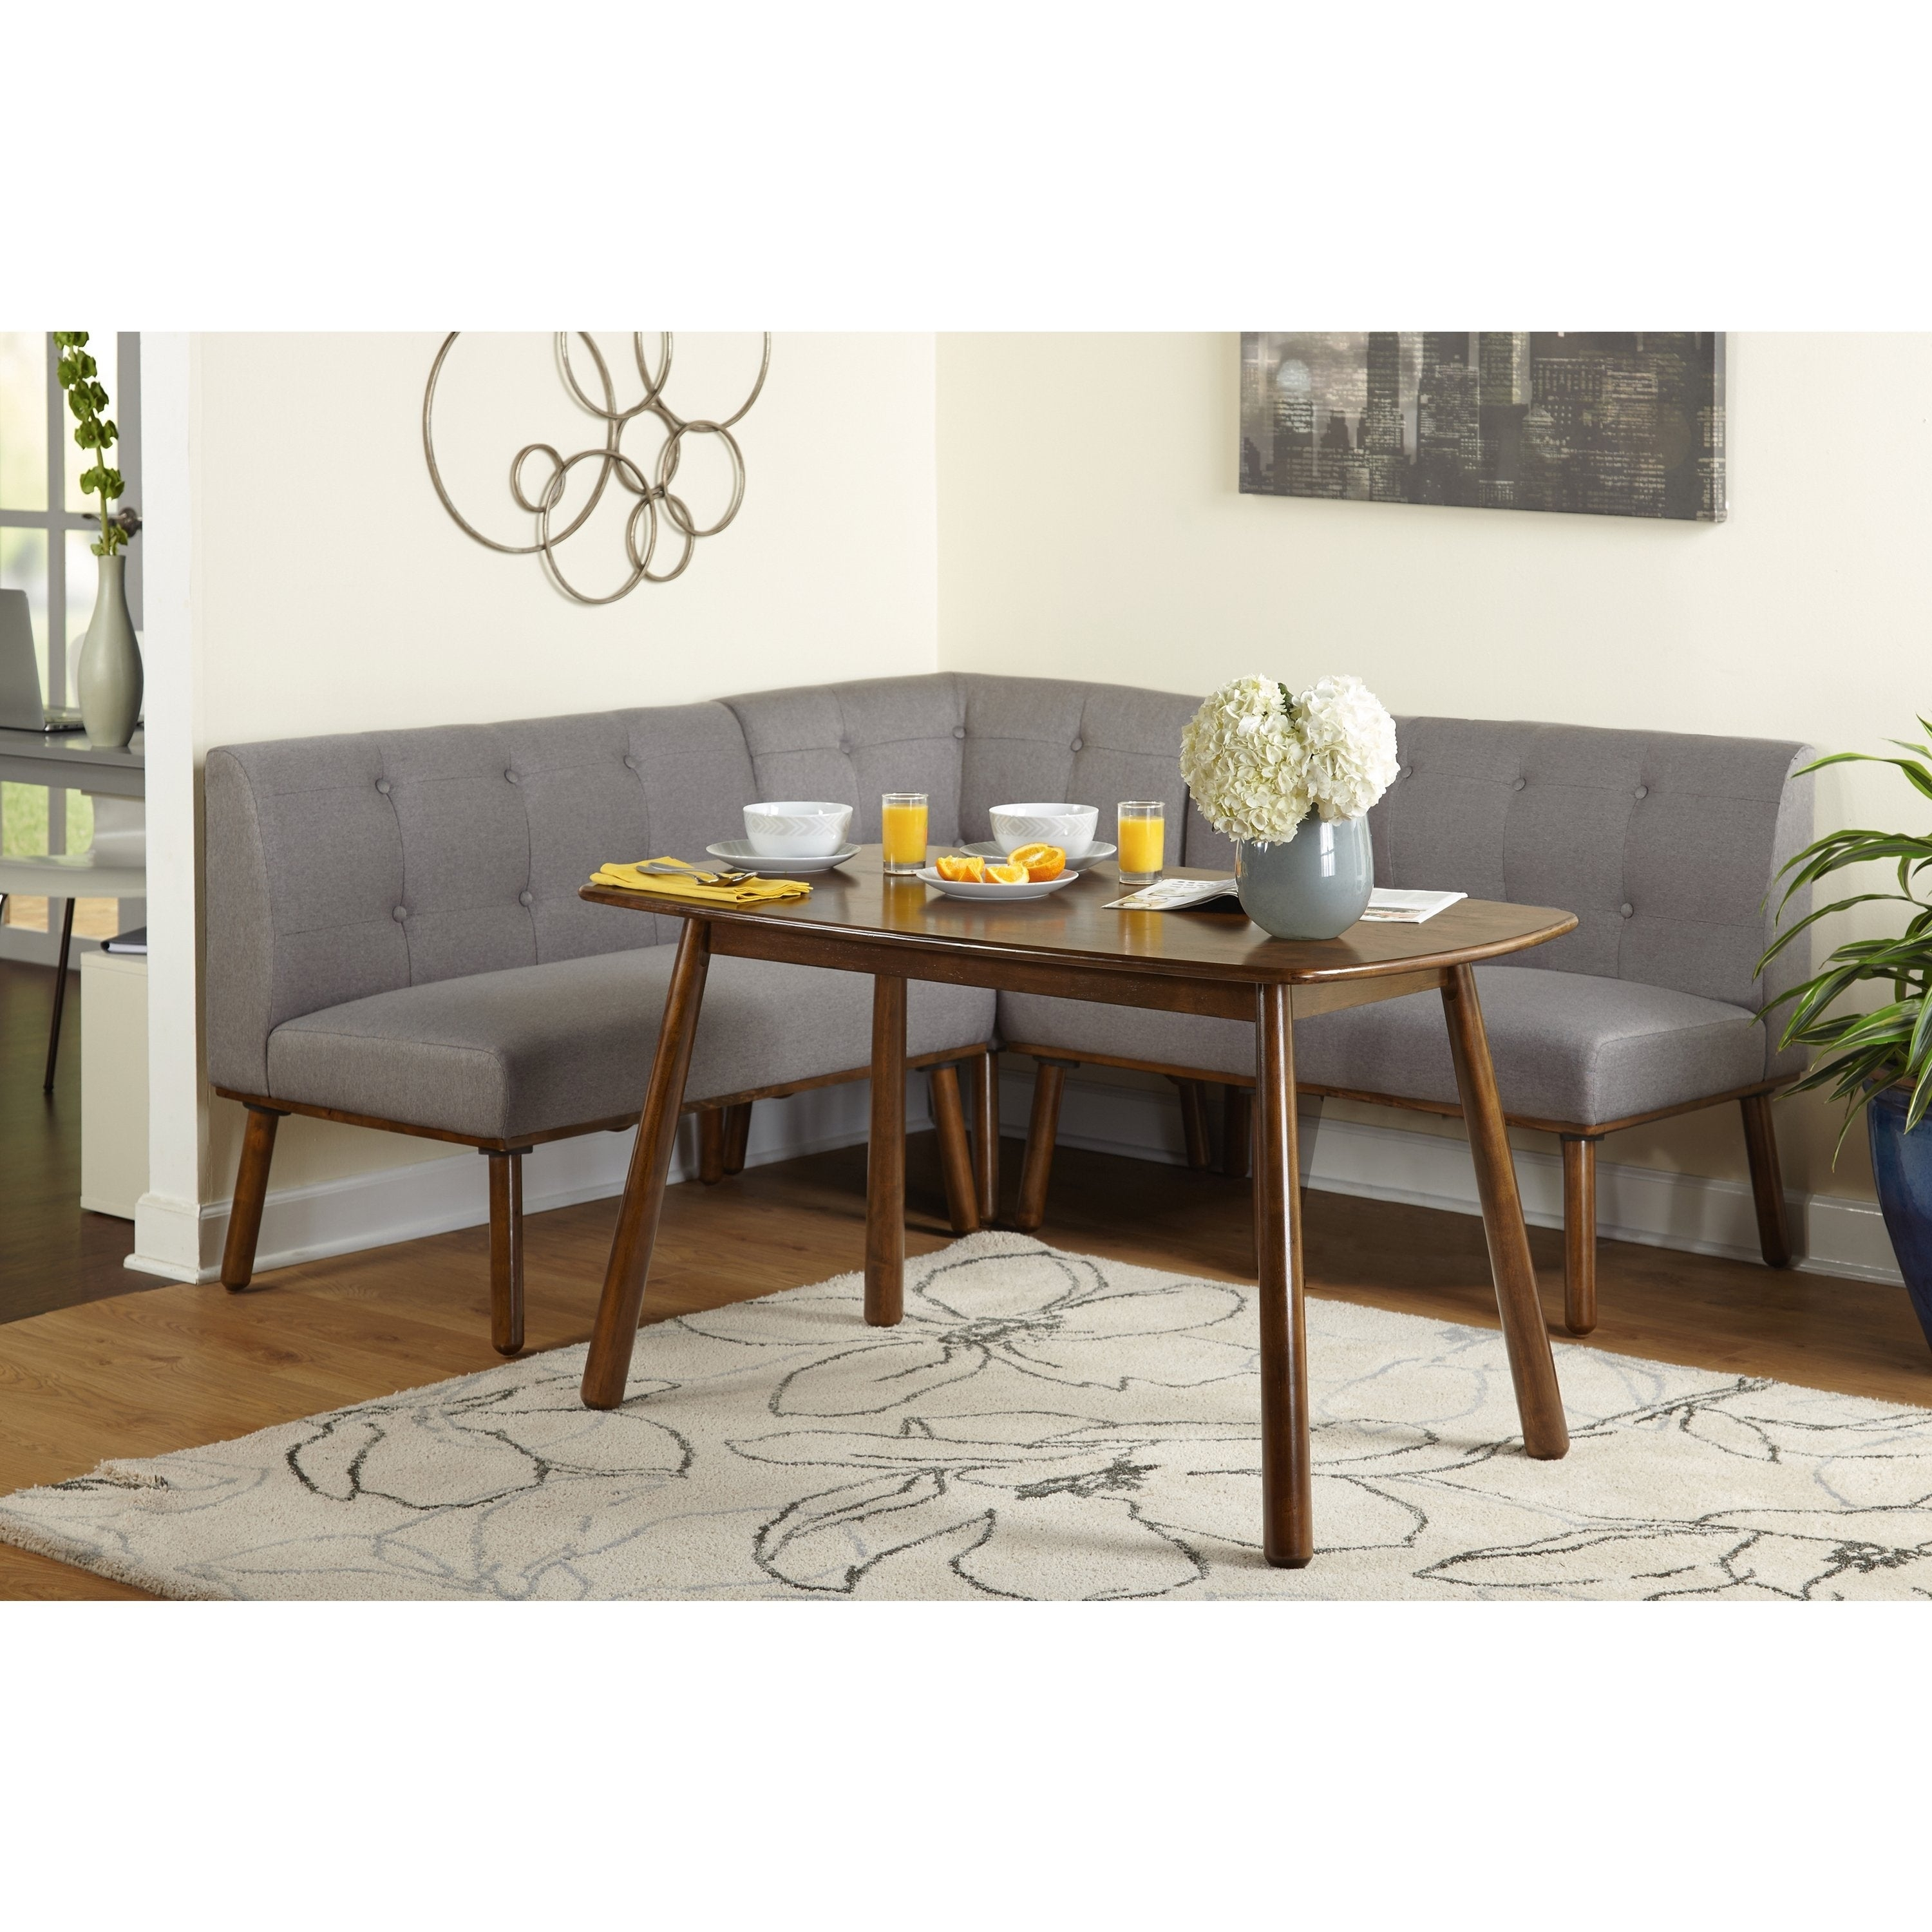 Trendy Frida 3 Piece Dining Table Sets Intended For Buy 3 Piece Sets Kitchen & Dining Room Sets Online At Overstock (#14 of 20)